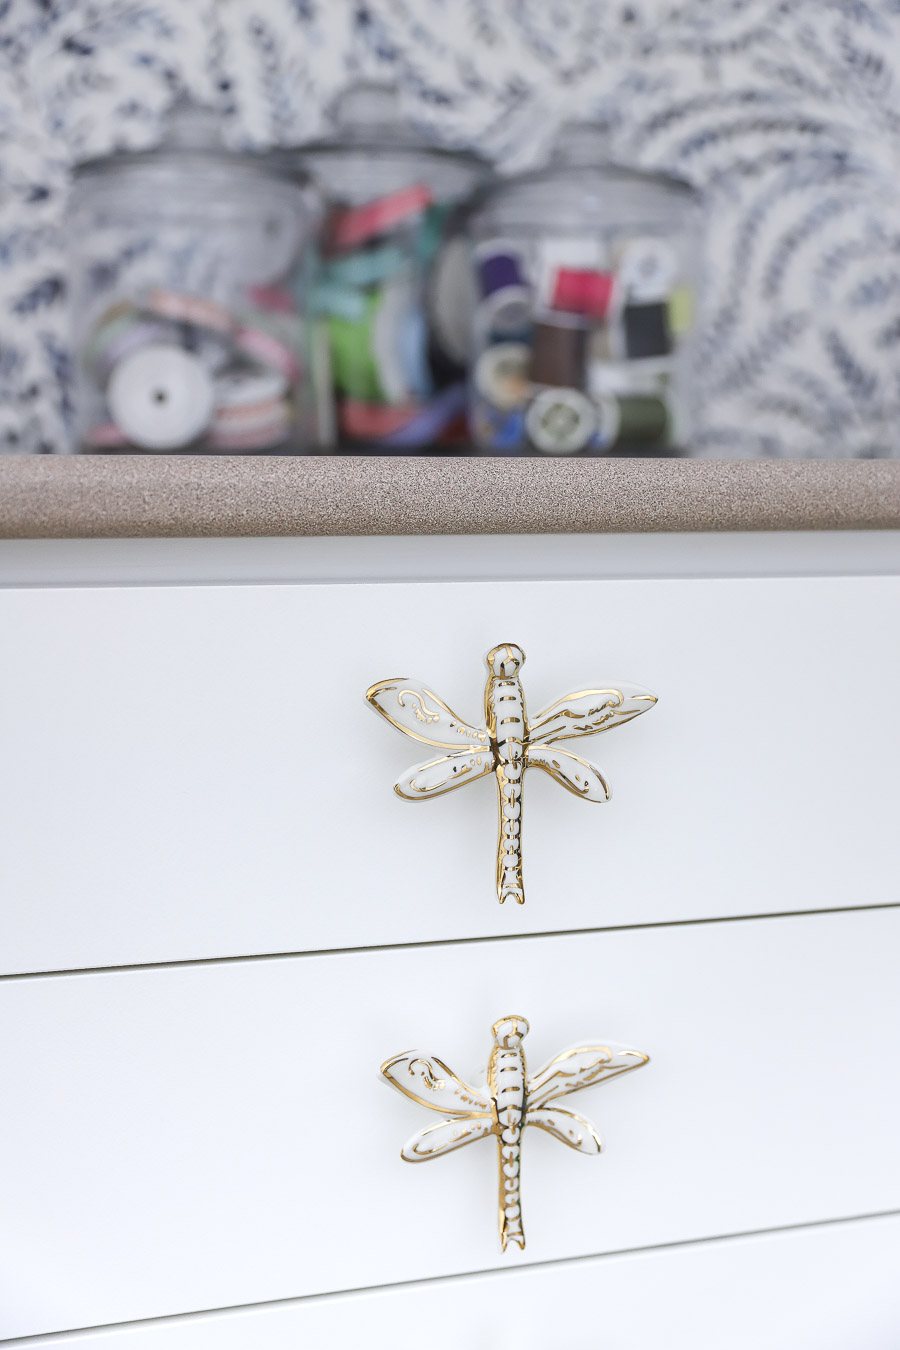 LOVE these dragonfly cabinet knobs! Source linked in post!